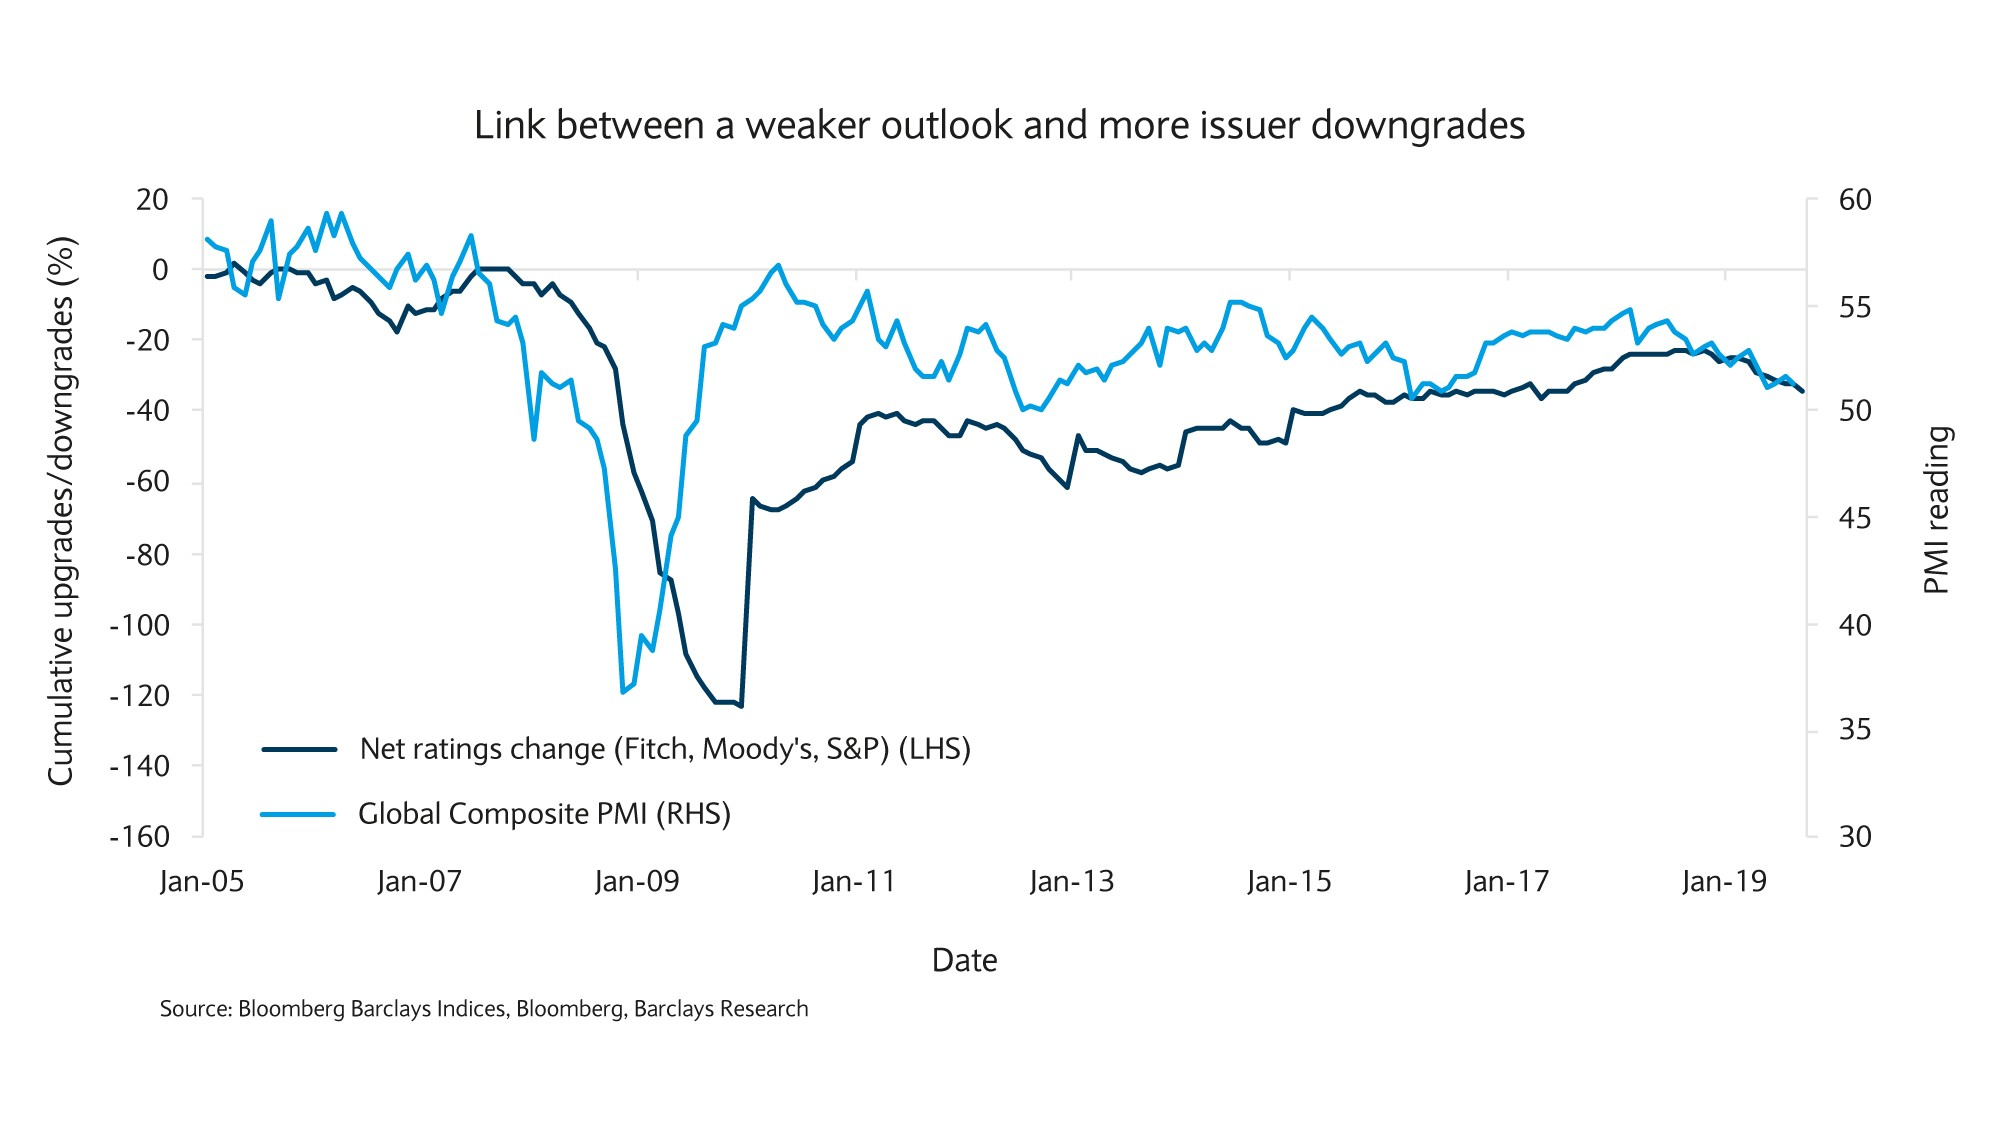 Link between weaker putput and more issuer downgrades